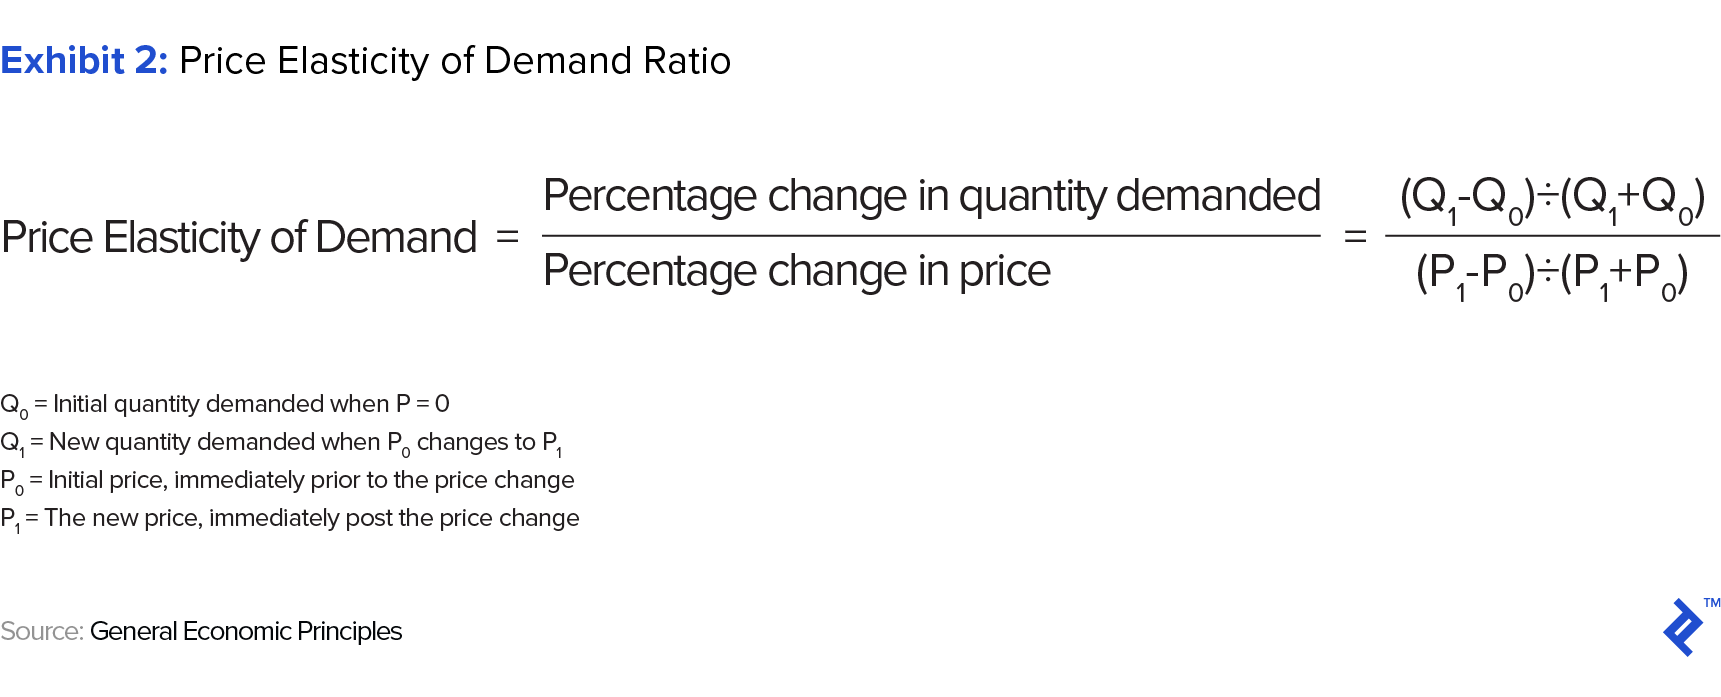 Exhibit 2: Price Elasticity of Demand Ratio